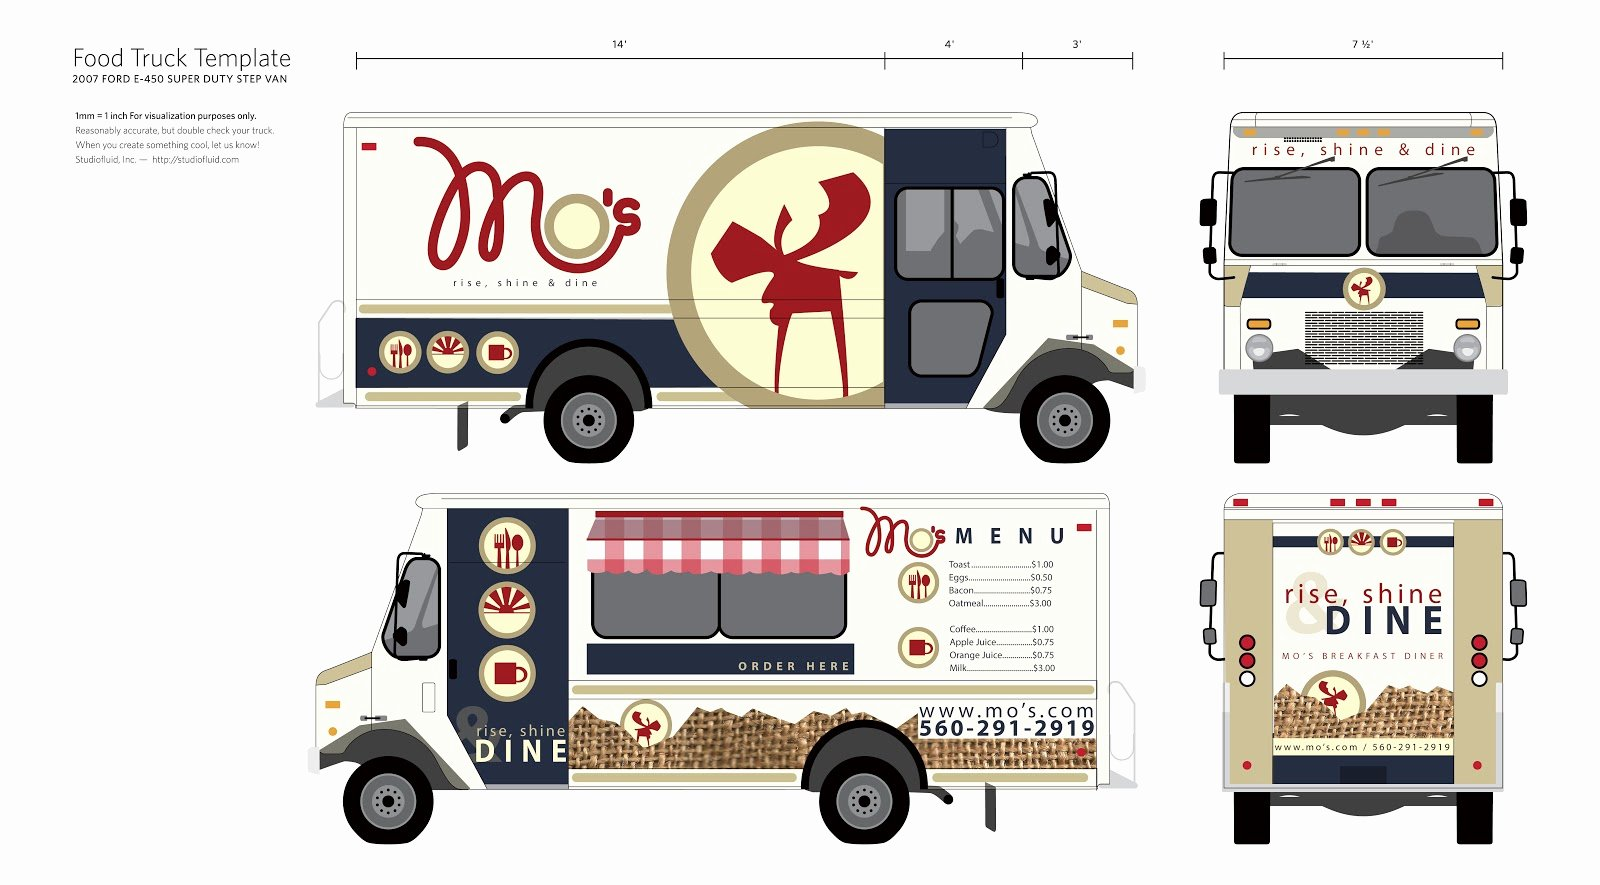 Food Truck Layout Template Lovely 8 Design Your Own Food Truck Designyourown Food